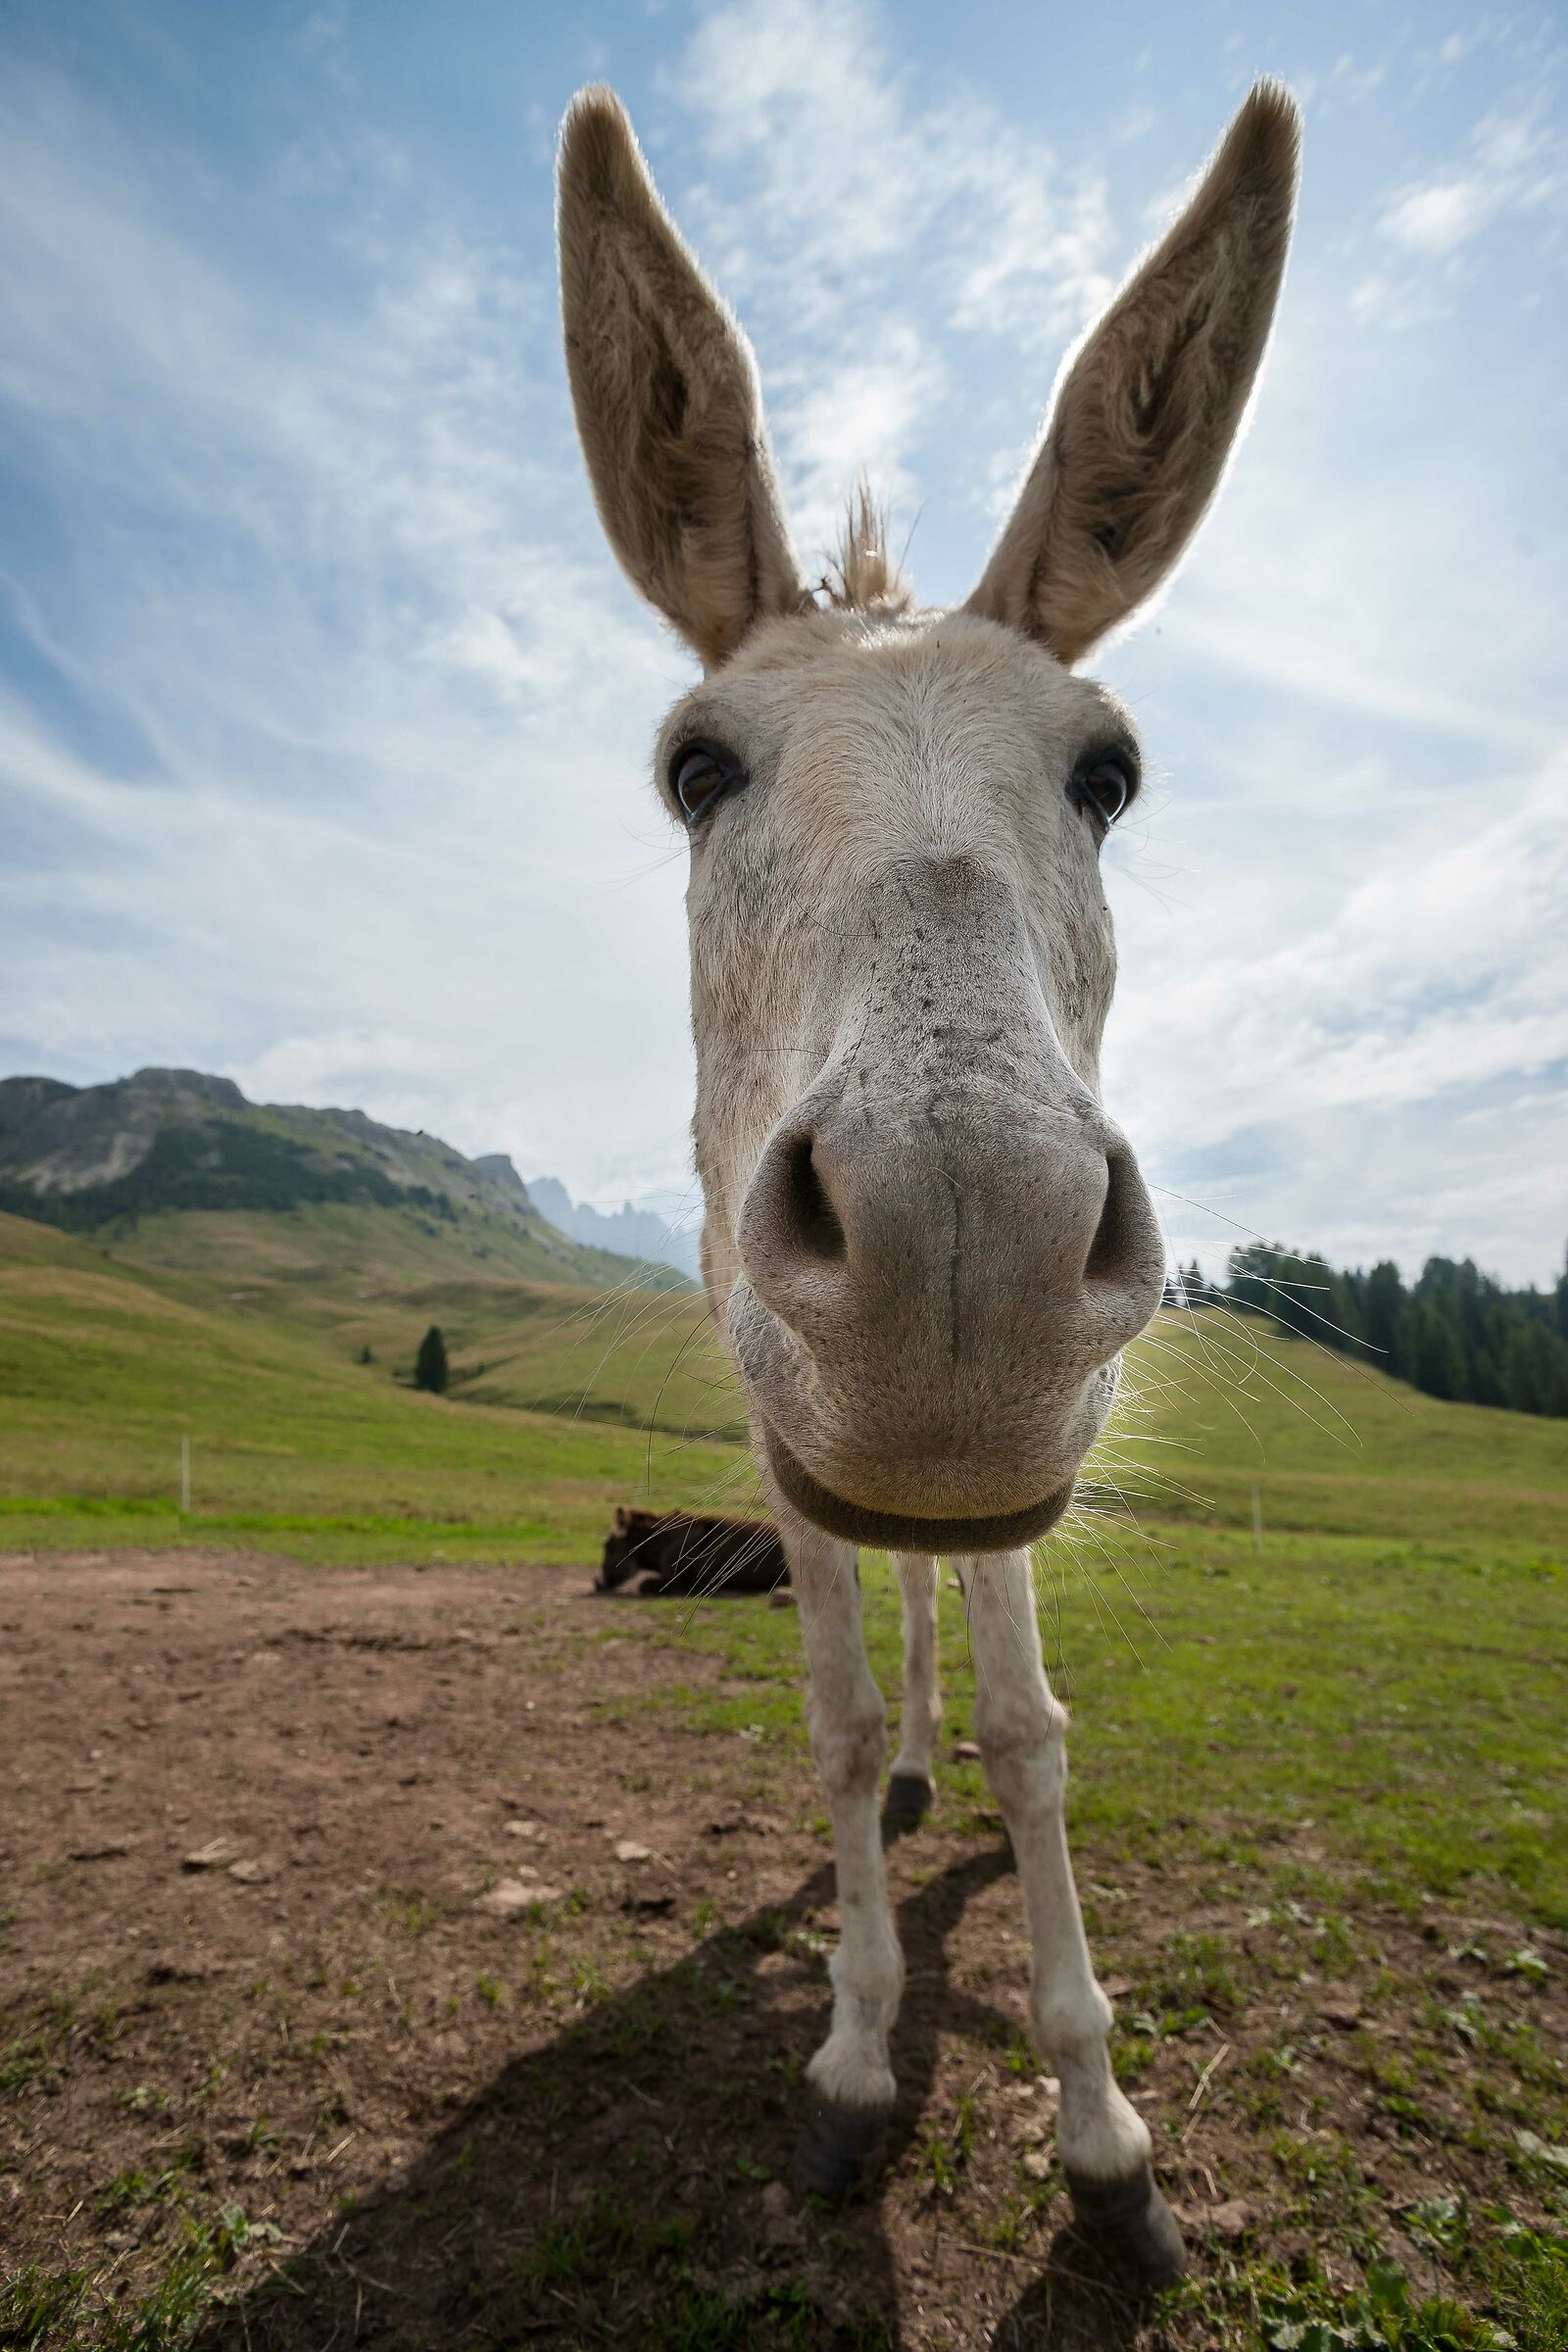 Friend Donkey...